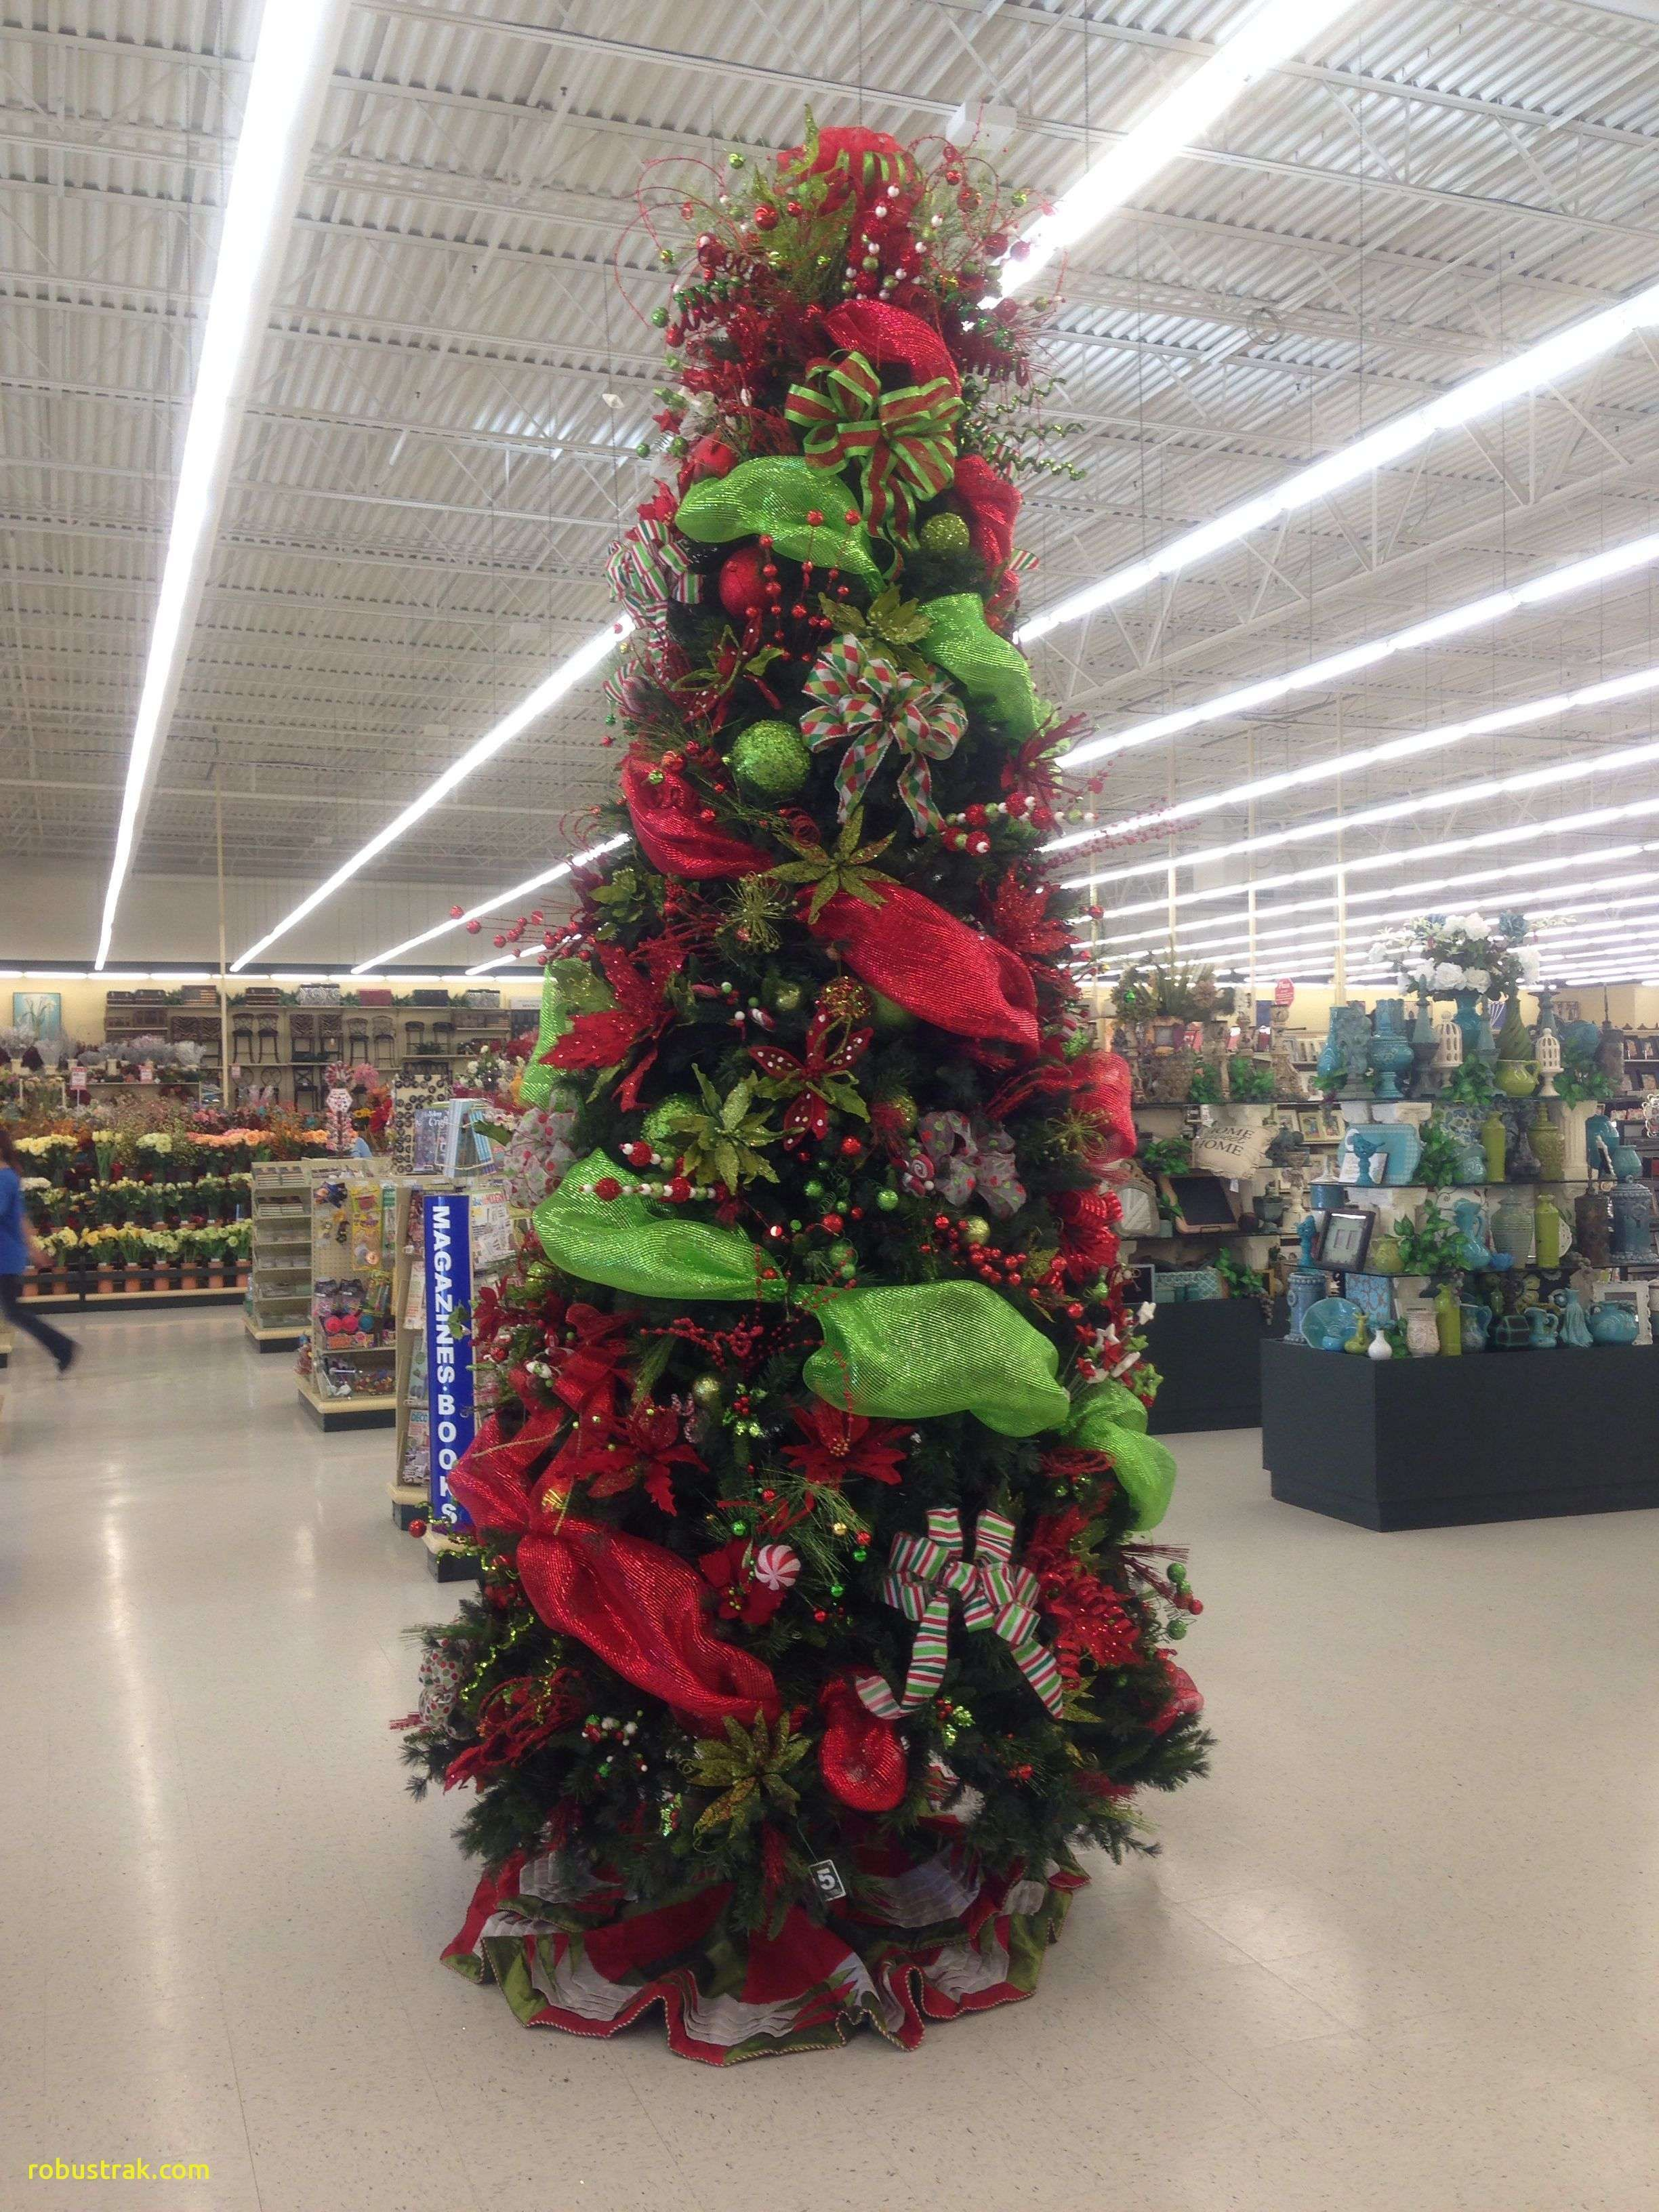 Best Of Mistletoe Decoration Ideas Homedecoratio Hobby Lobby Christmas Decorations Gold Christmas Tree Decorations Christmas Tree Decorating Ideas Pictures